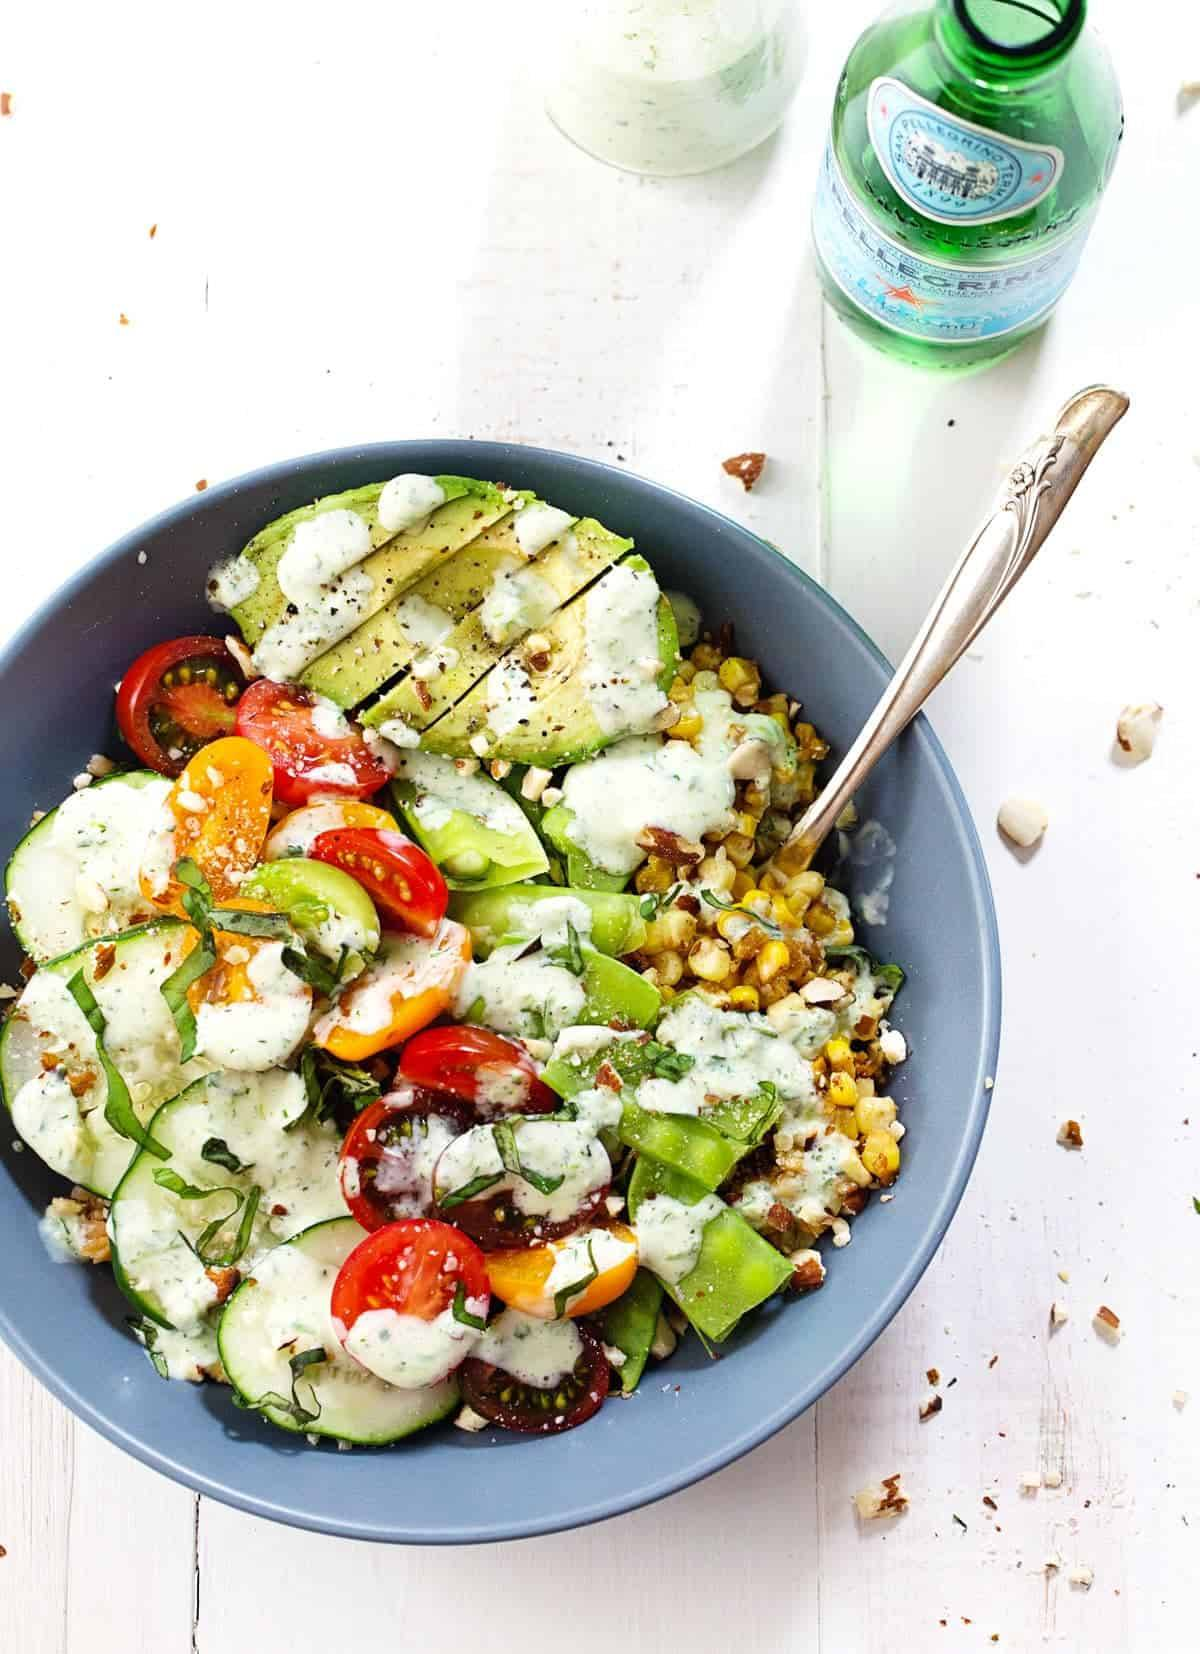 ... have your mouth hugged by this creamy, tangy, spicy jalapeño ranch